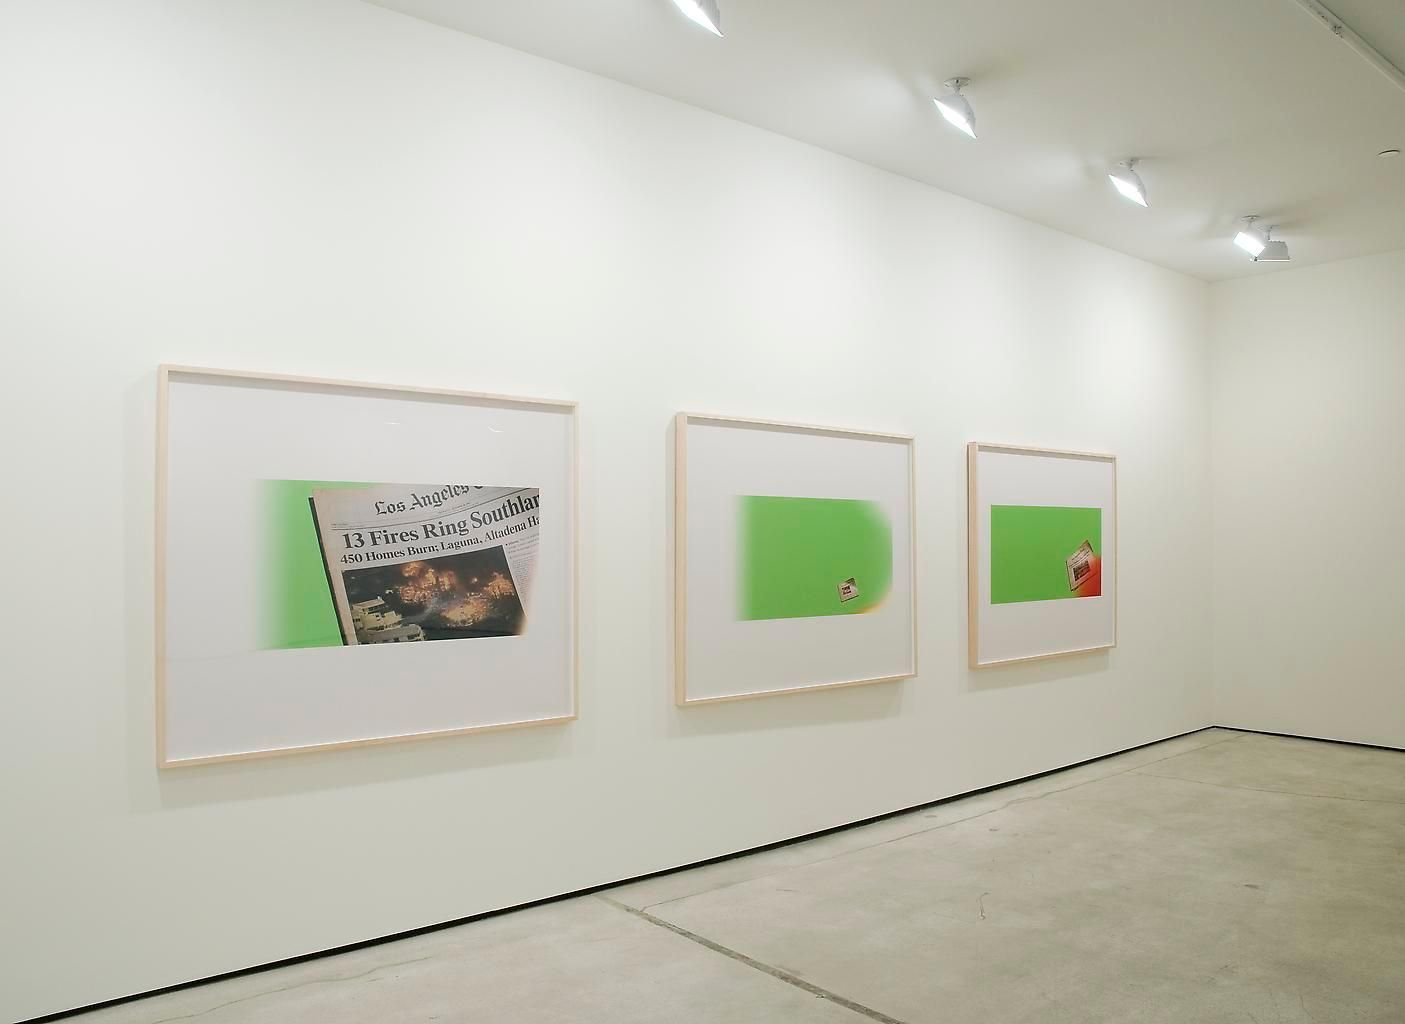 Installation view, Larry Johnson, Frame Tales, Marc Jancou, New York, May 27 - July 2, 2010